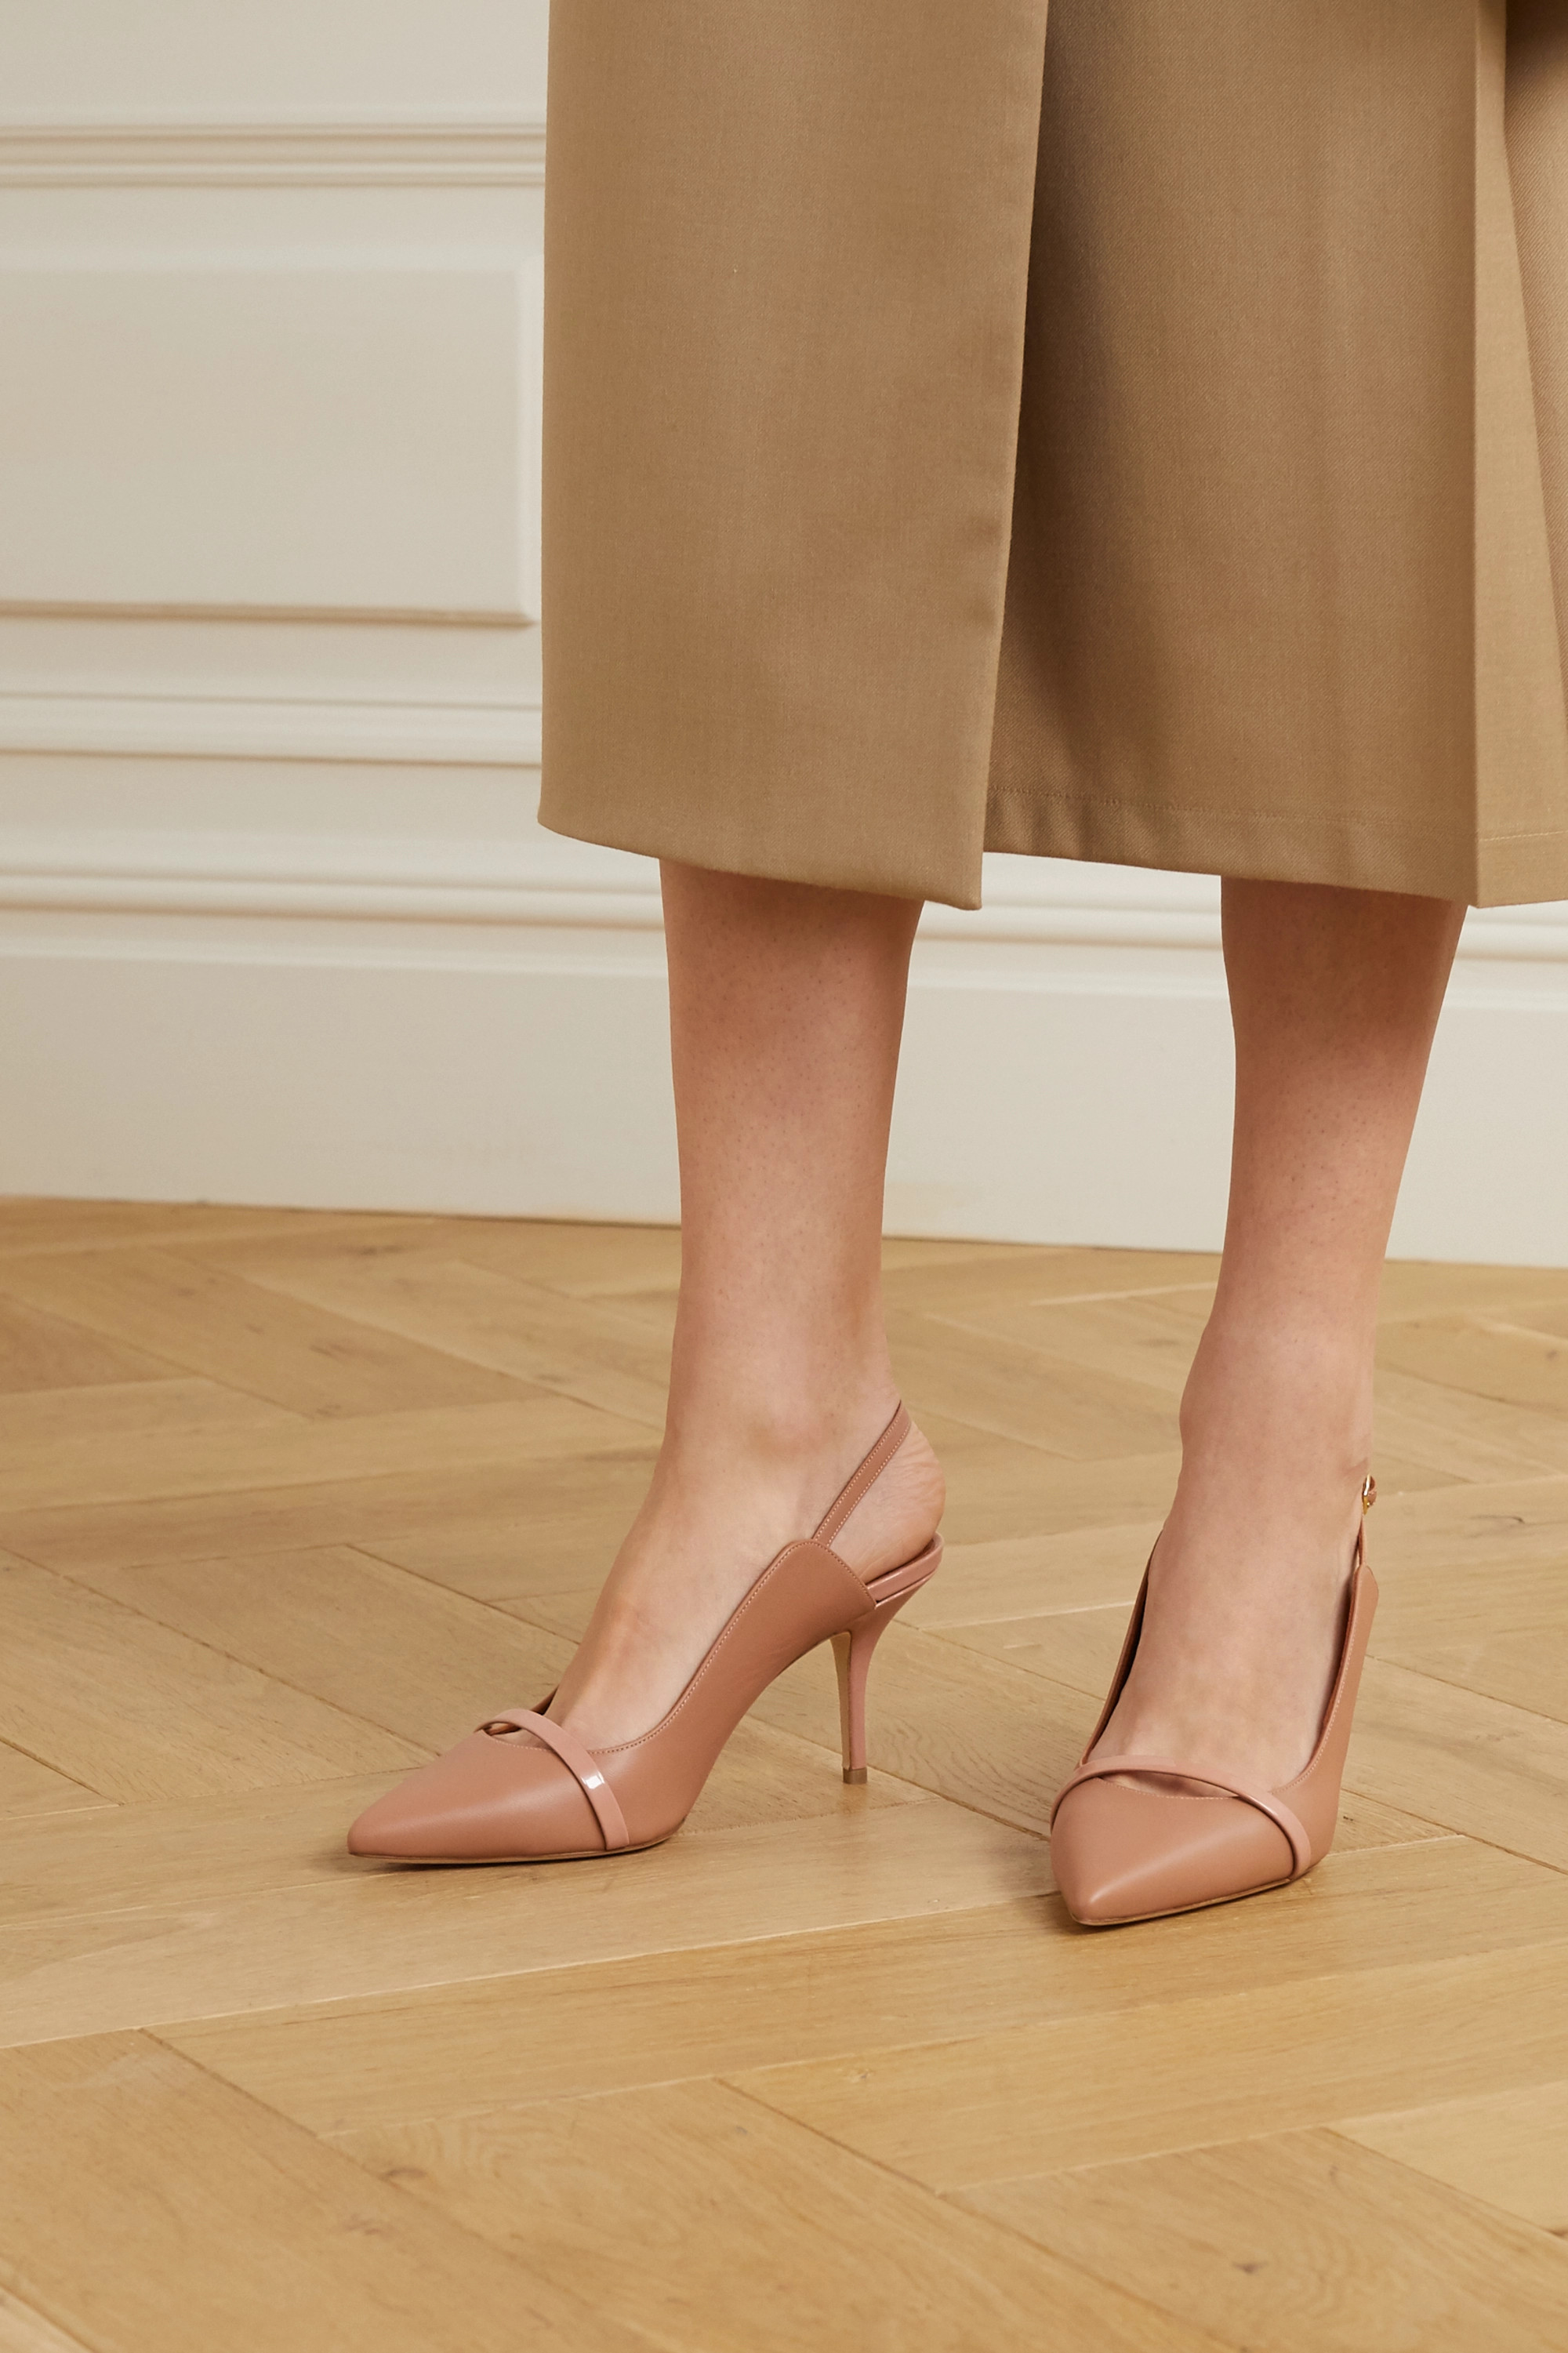 Malone Souliers Marion 70 leather slingback pumps